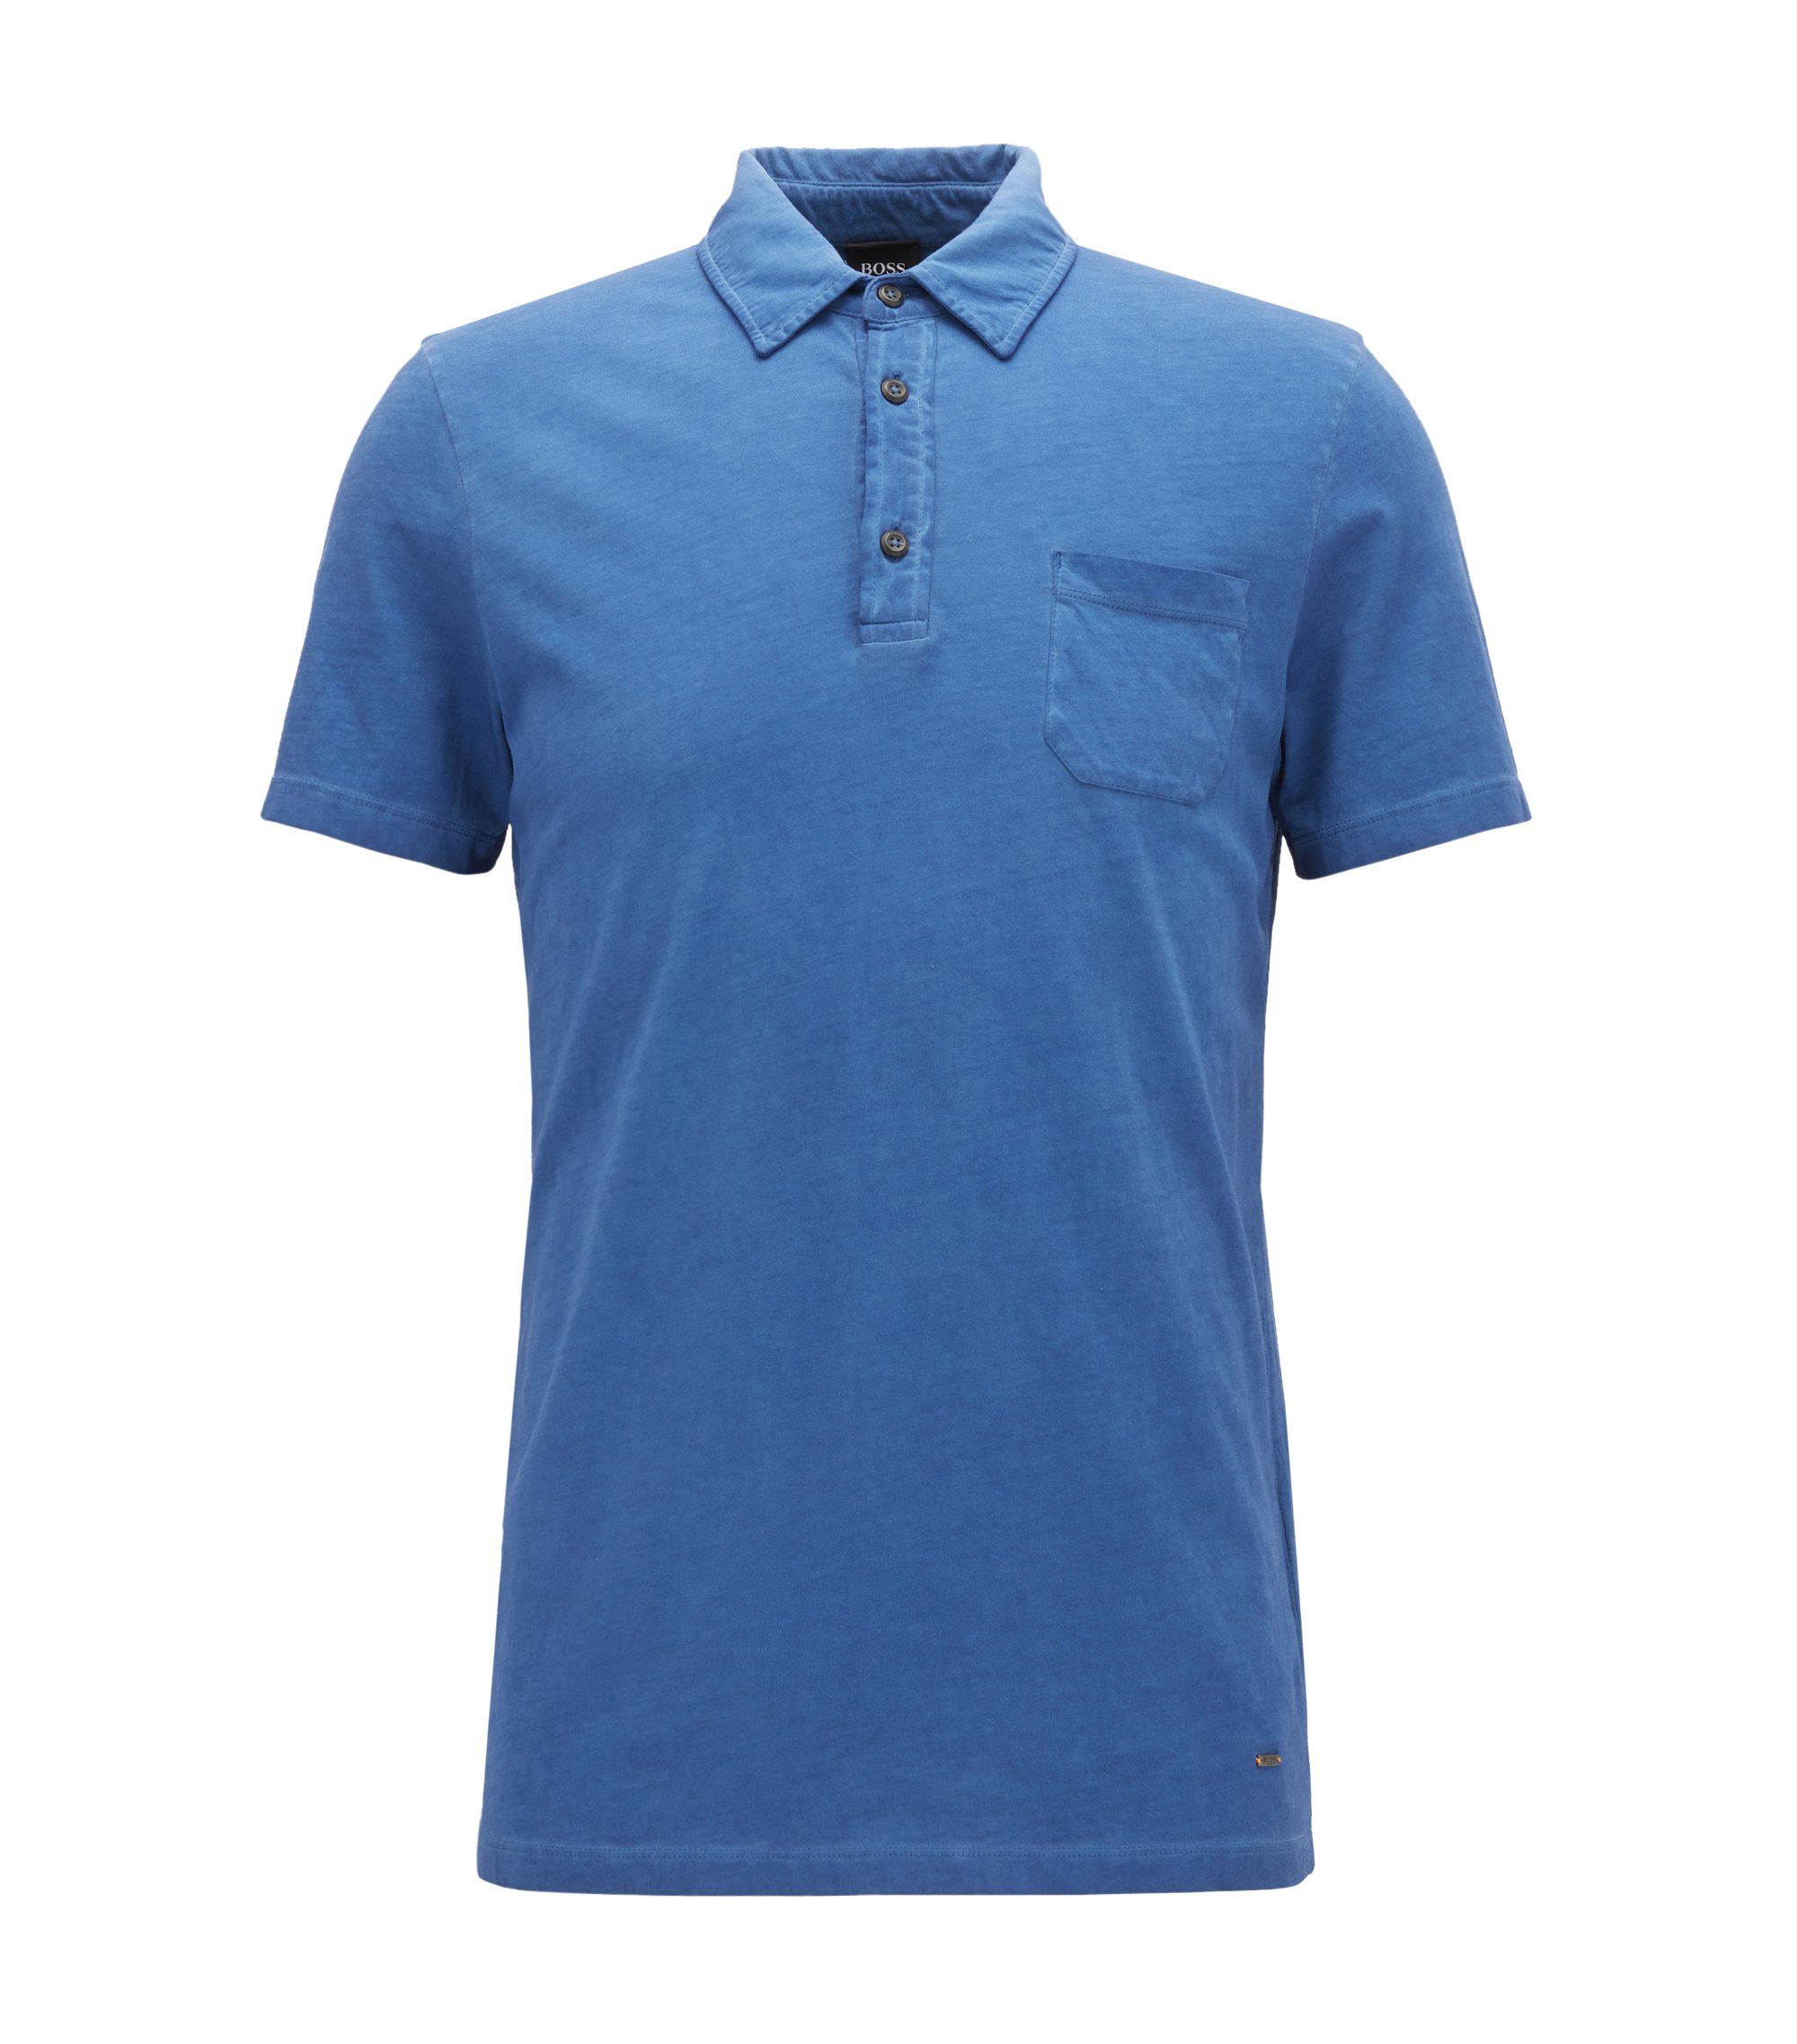 Garment-Dyed Cotton Polo Shirt, Regular Fit | Purpose, Blue